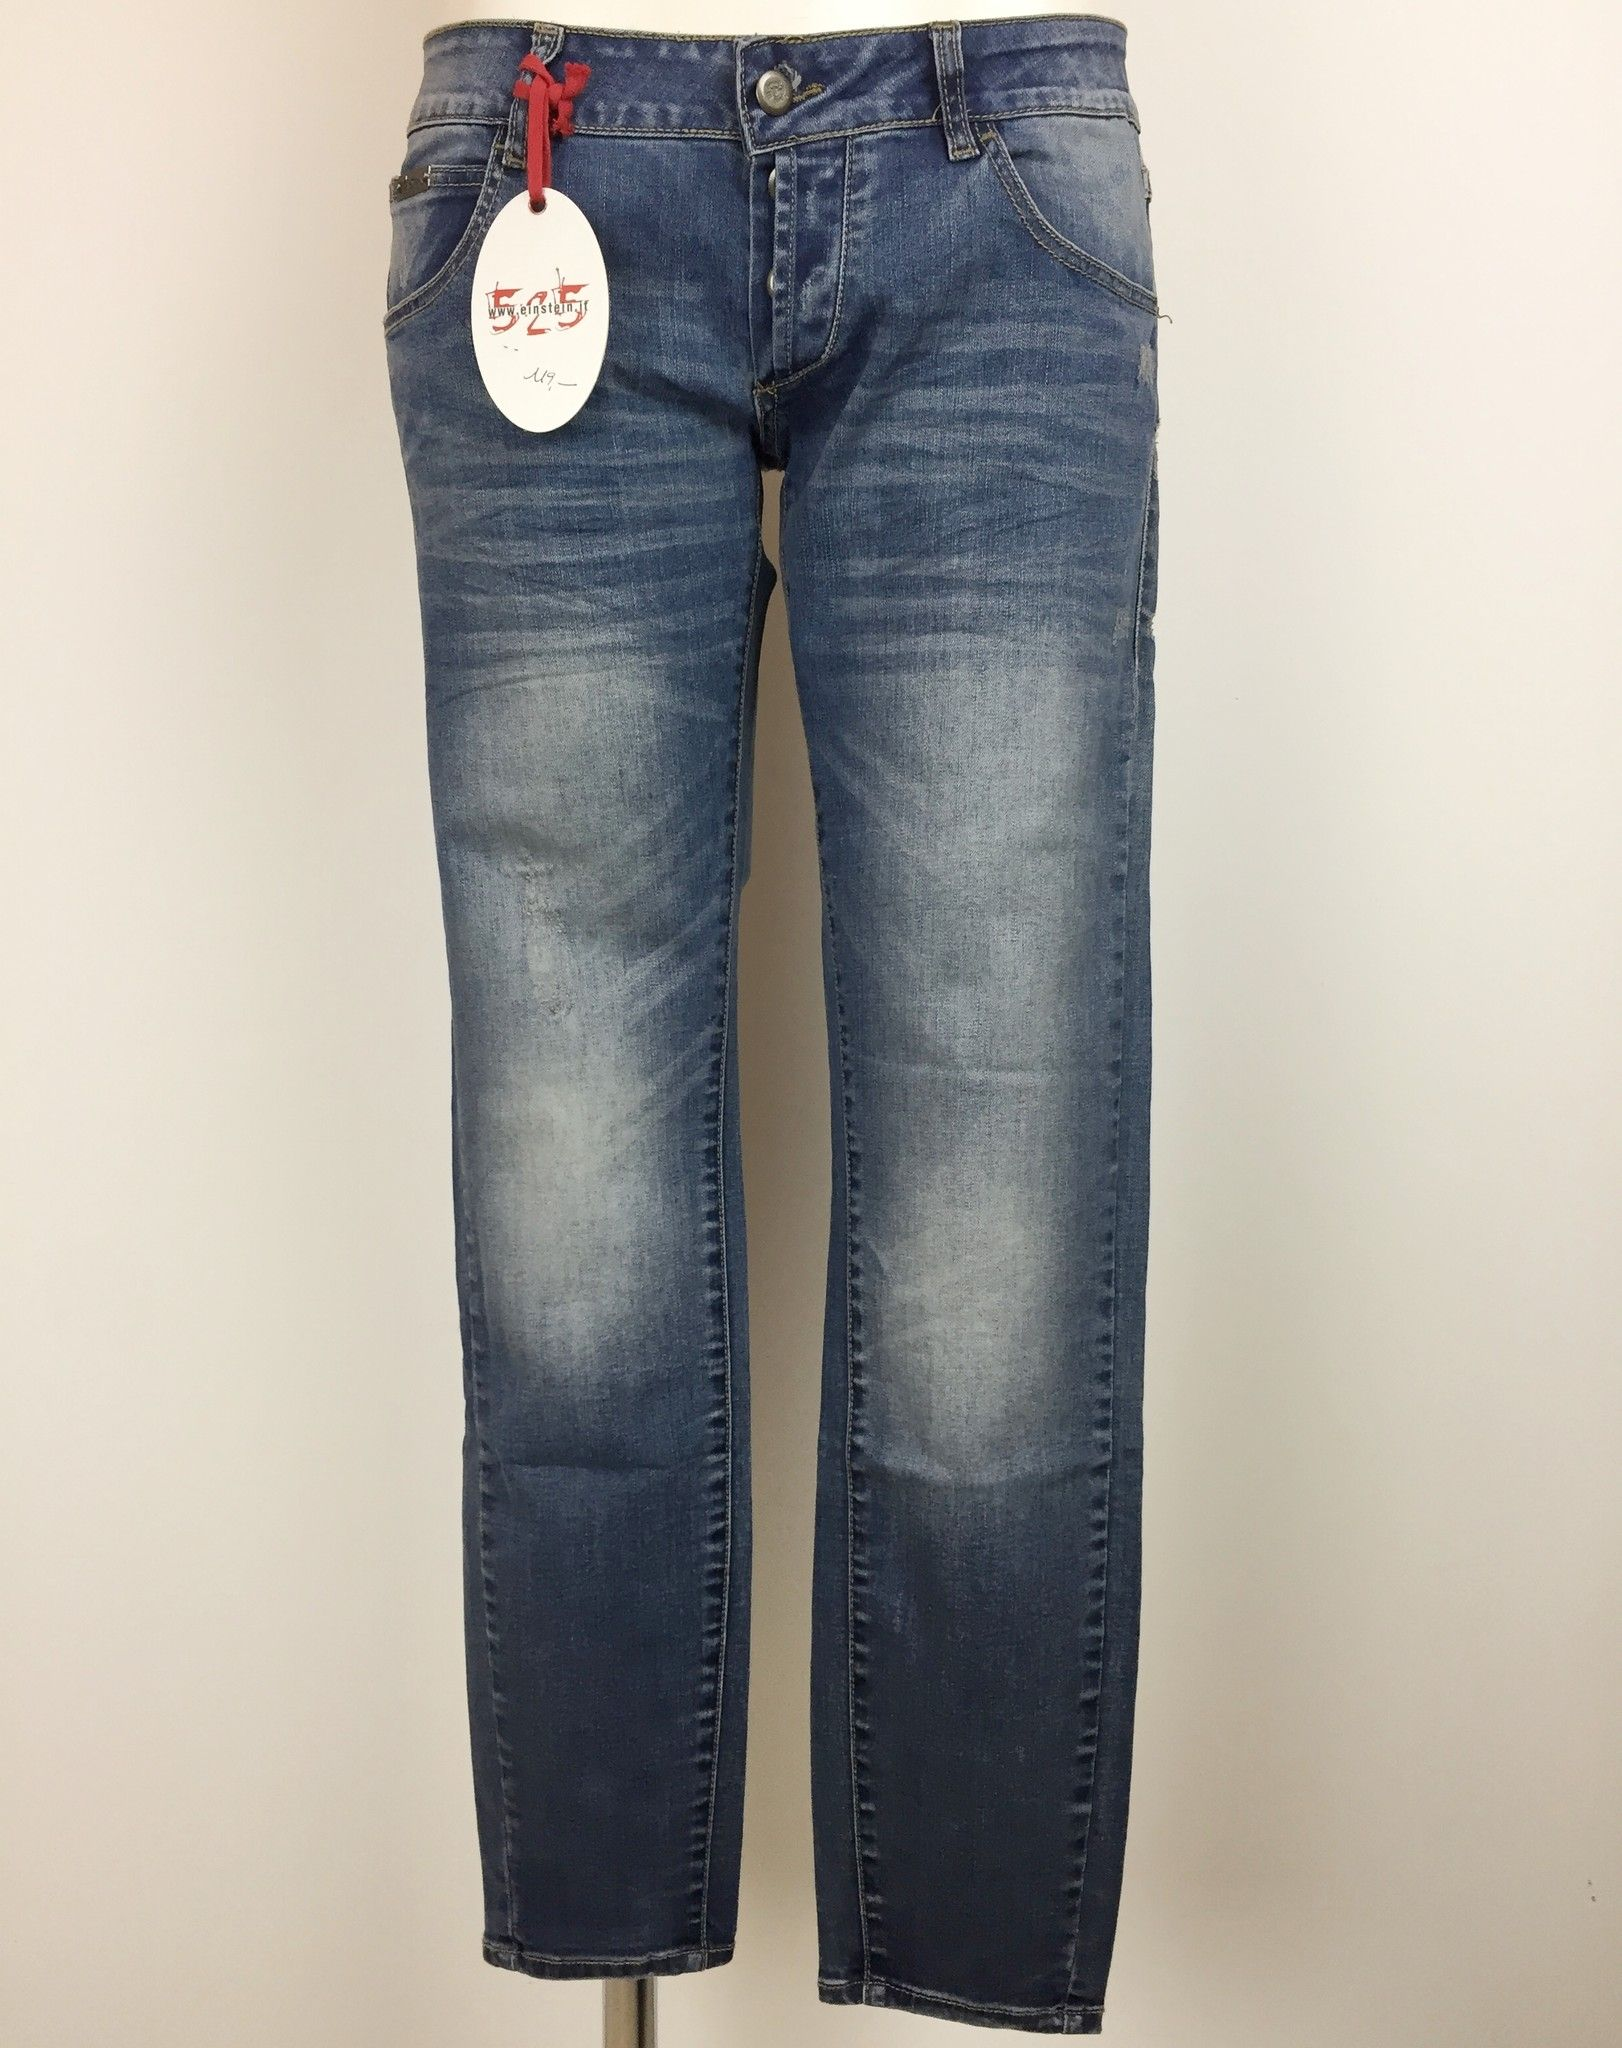 Sexy Woman 525 Stretch Jeans with Ankle Zippers Cod.P454526